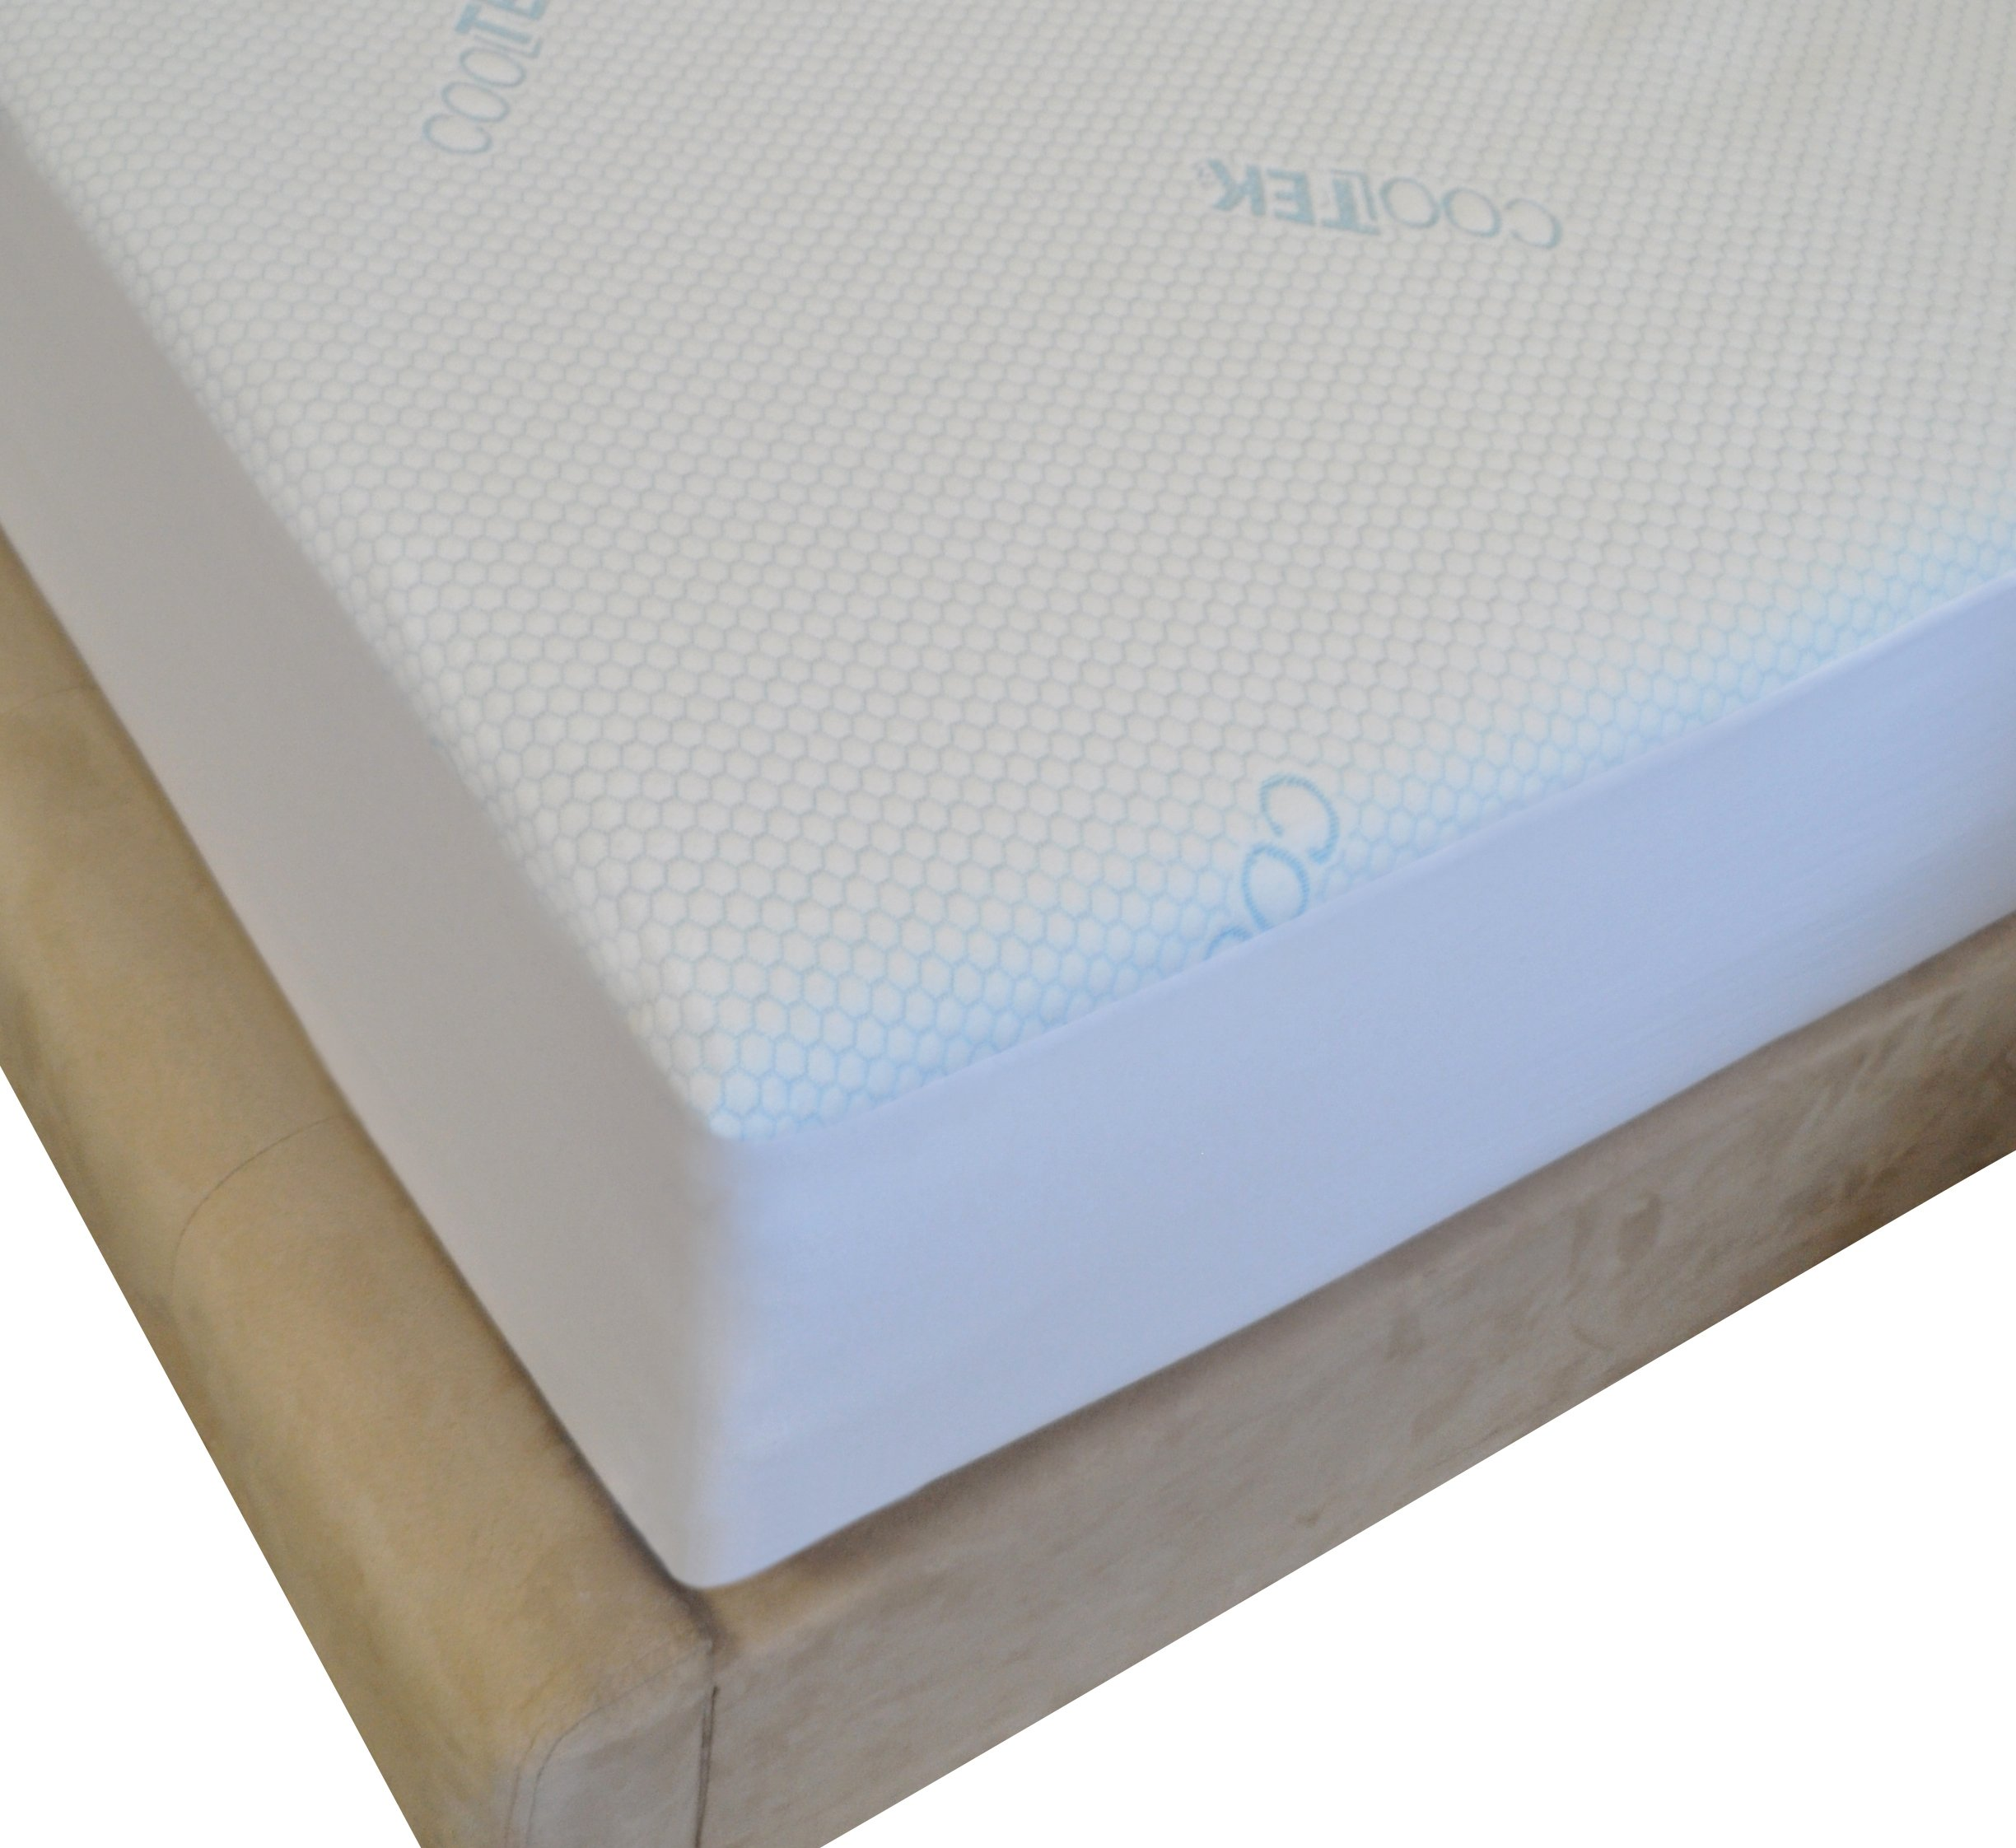 Thomasville Purify Waterproof Mattress Protector with Cool-Tek, Twin XL